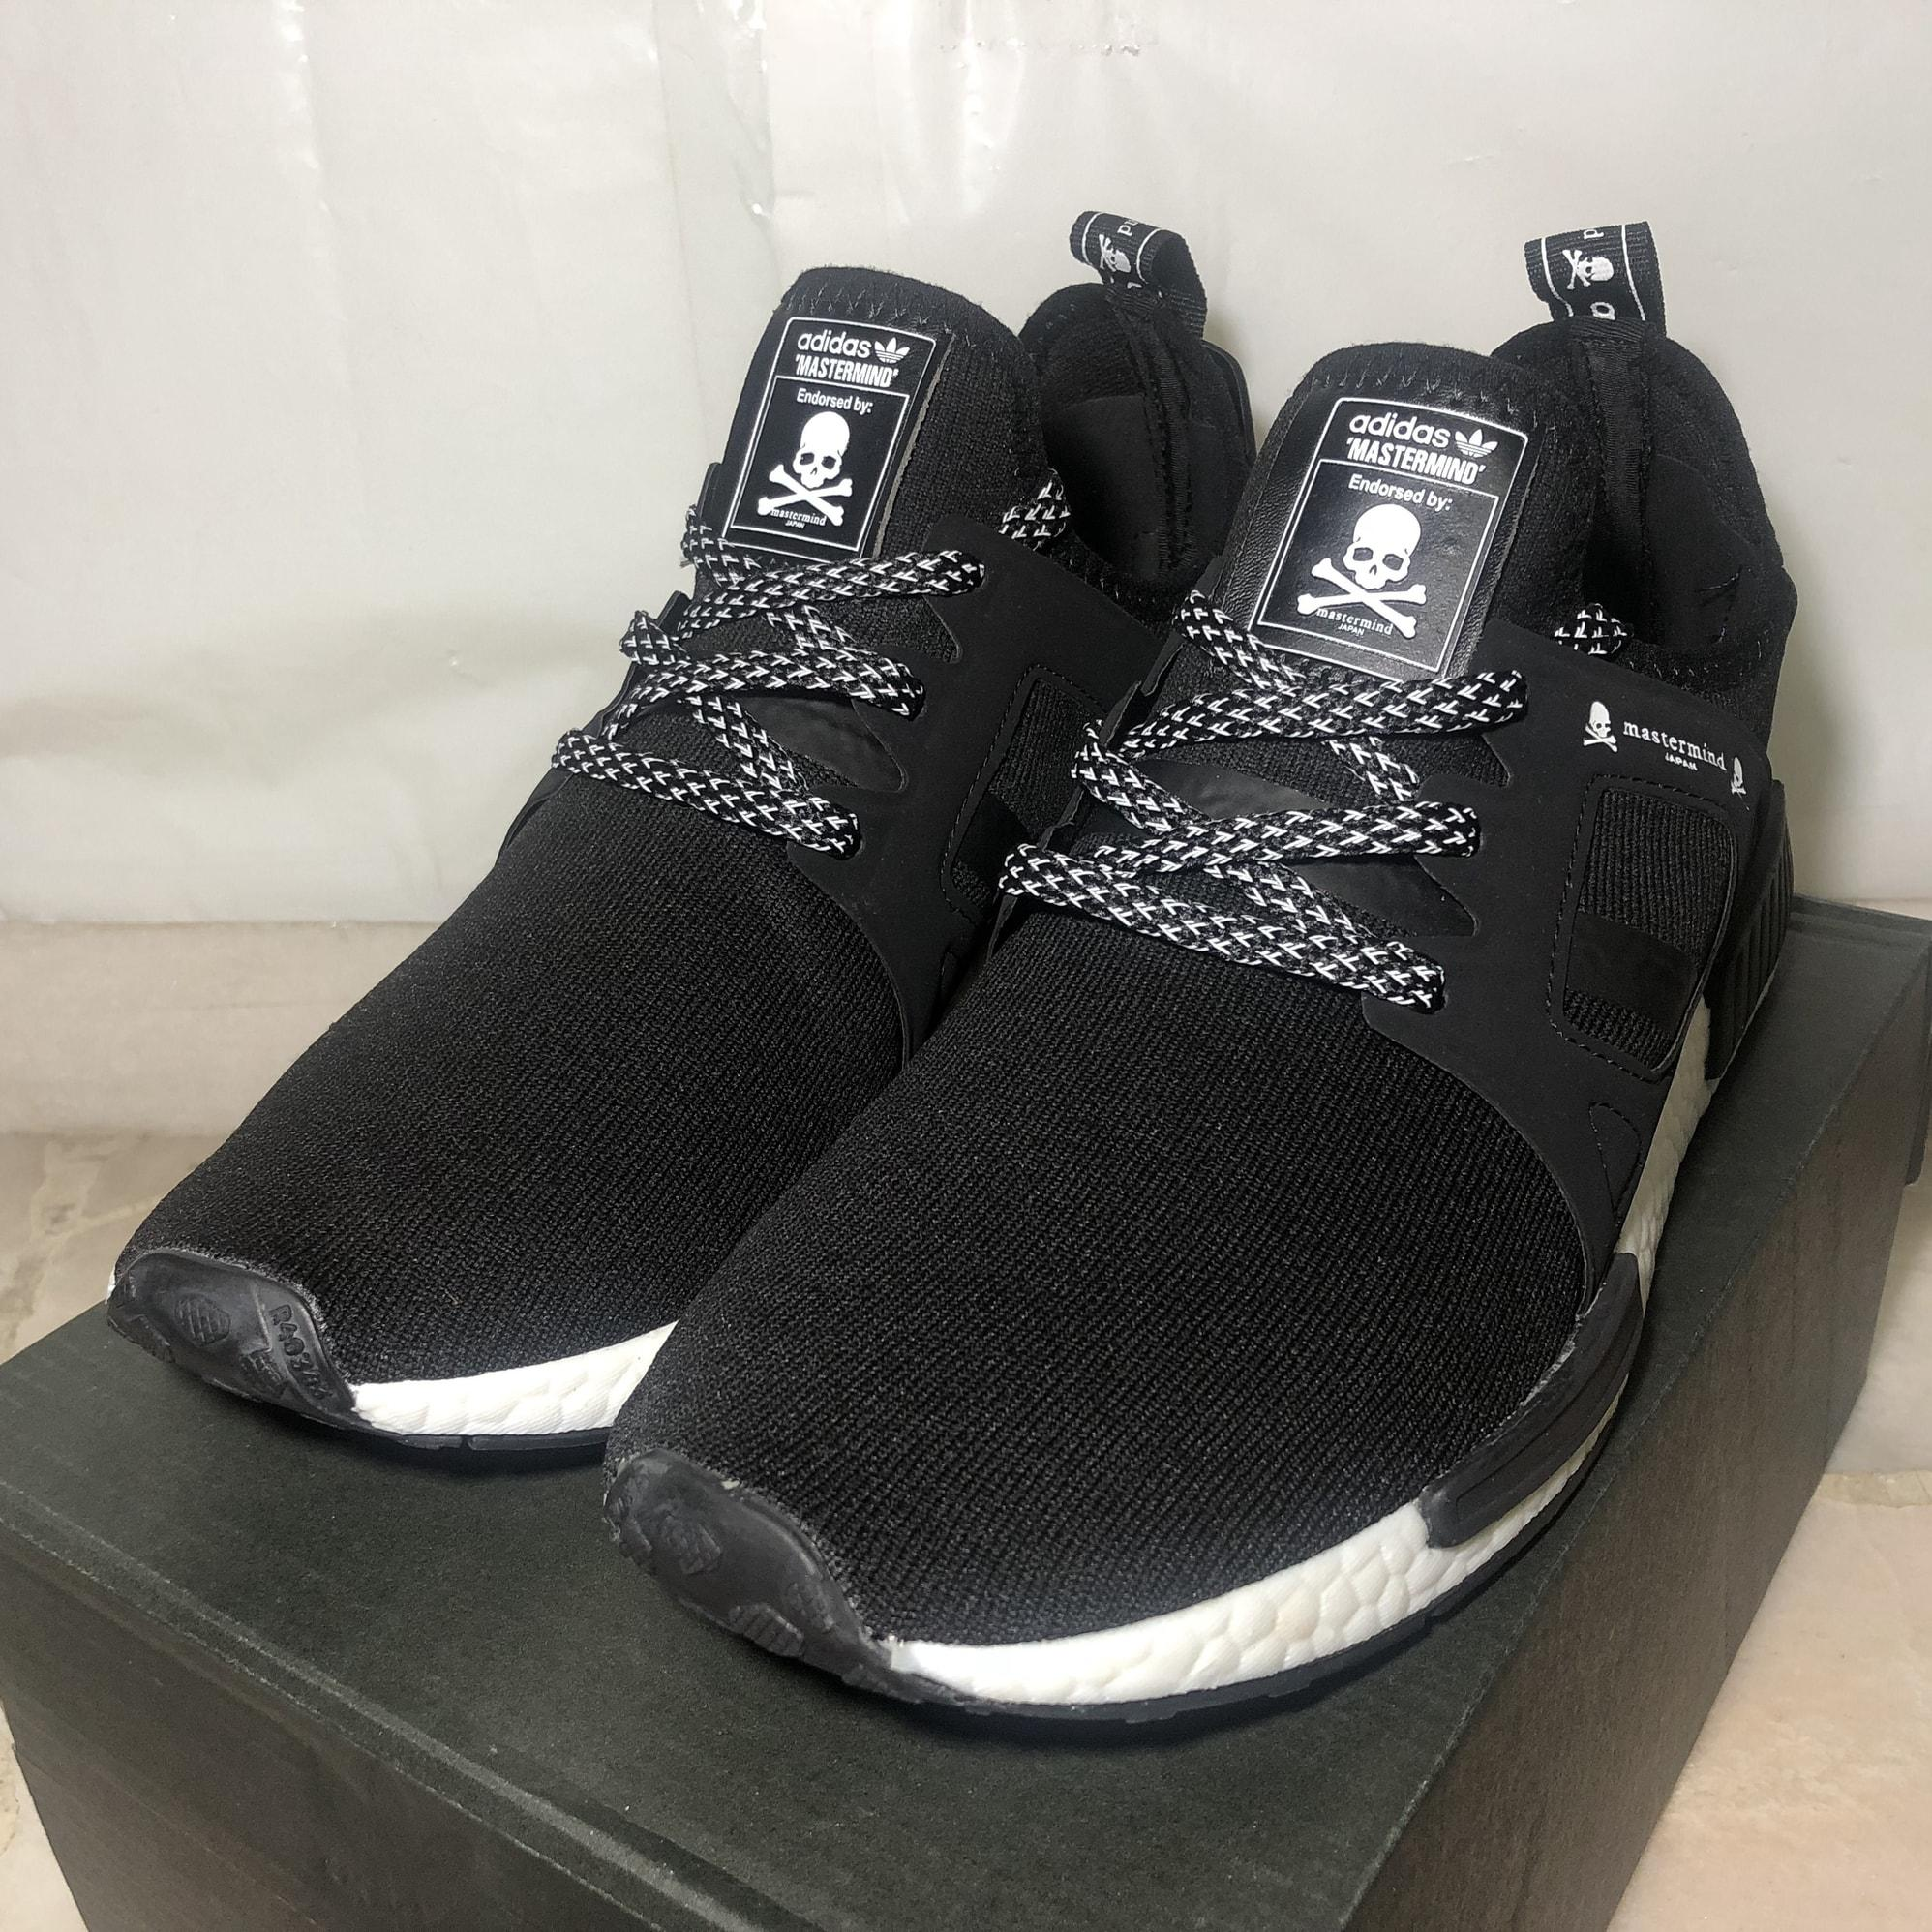 4a2a8330f2c69 Adidas Nmd R1 Black And Tan price in Singapore